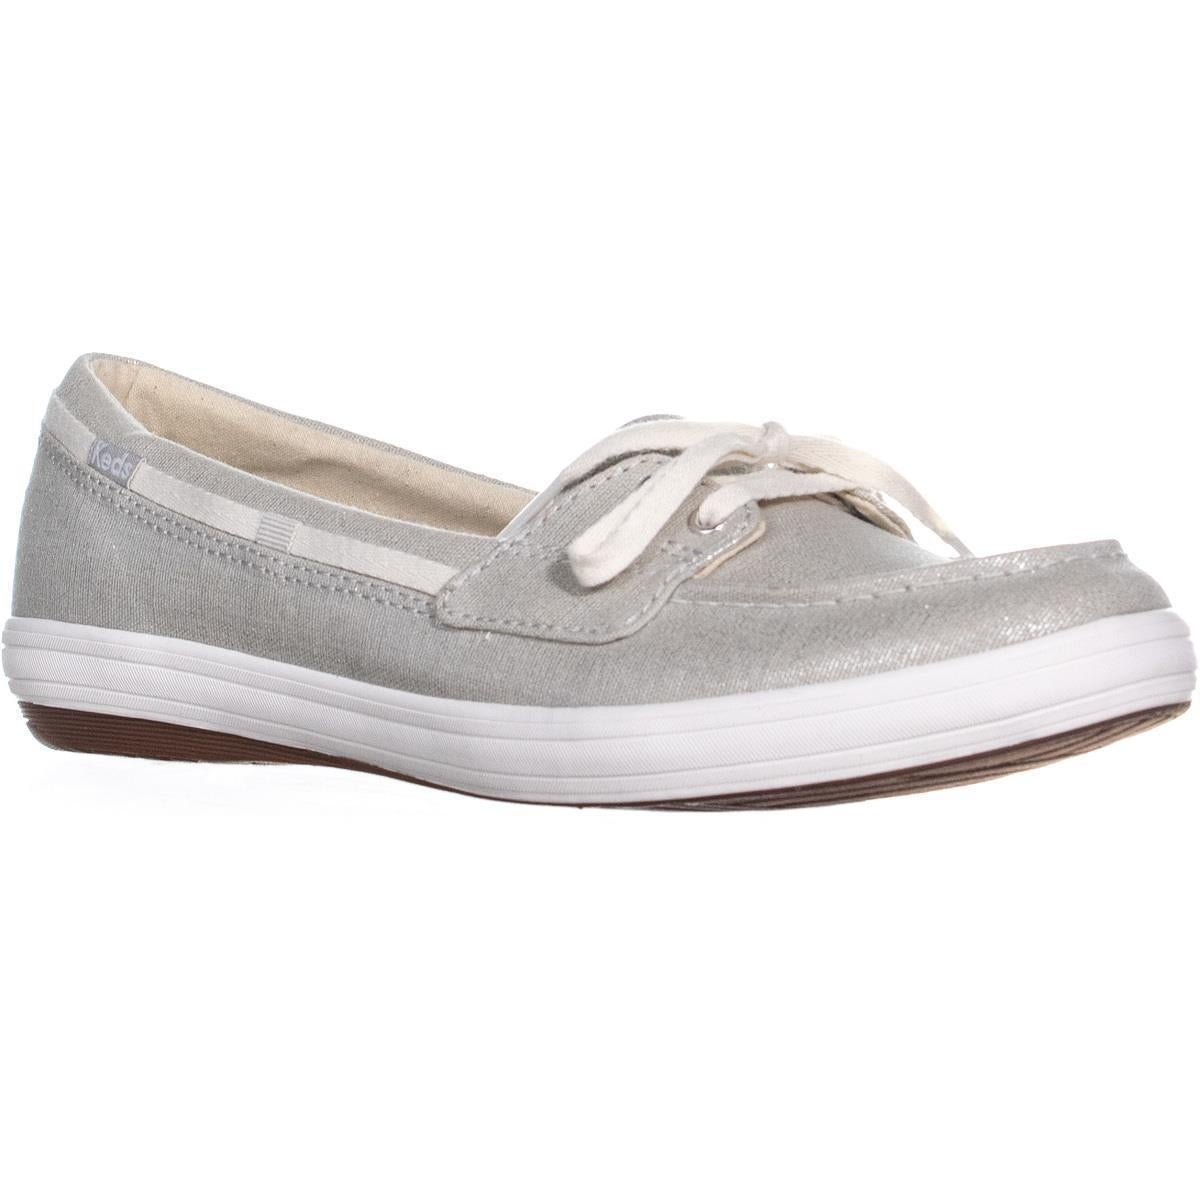 Shop Keds Glimmer Lace Up Boat Shoes